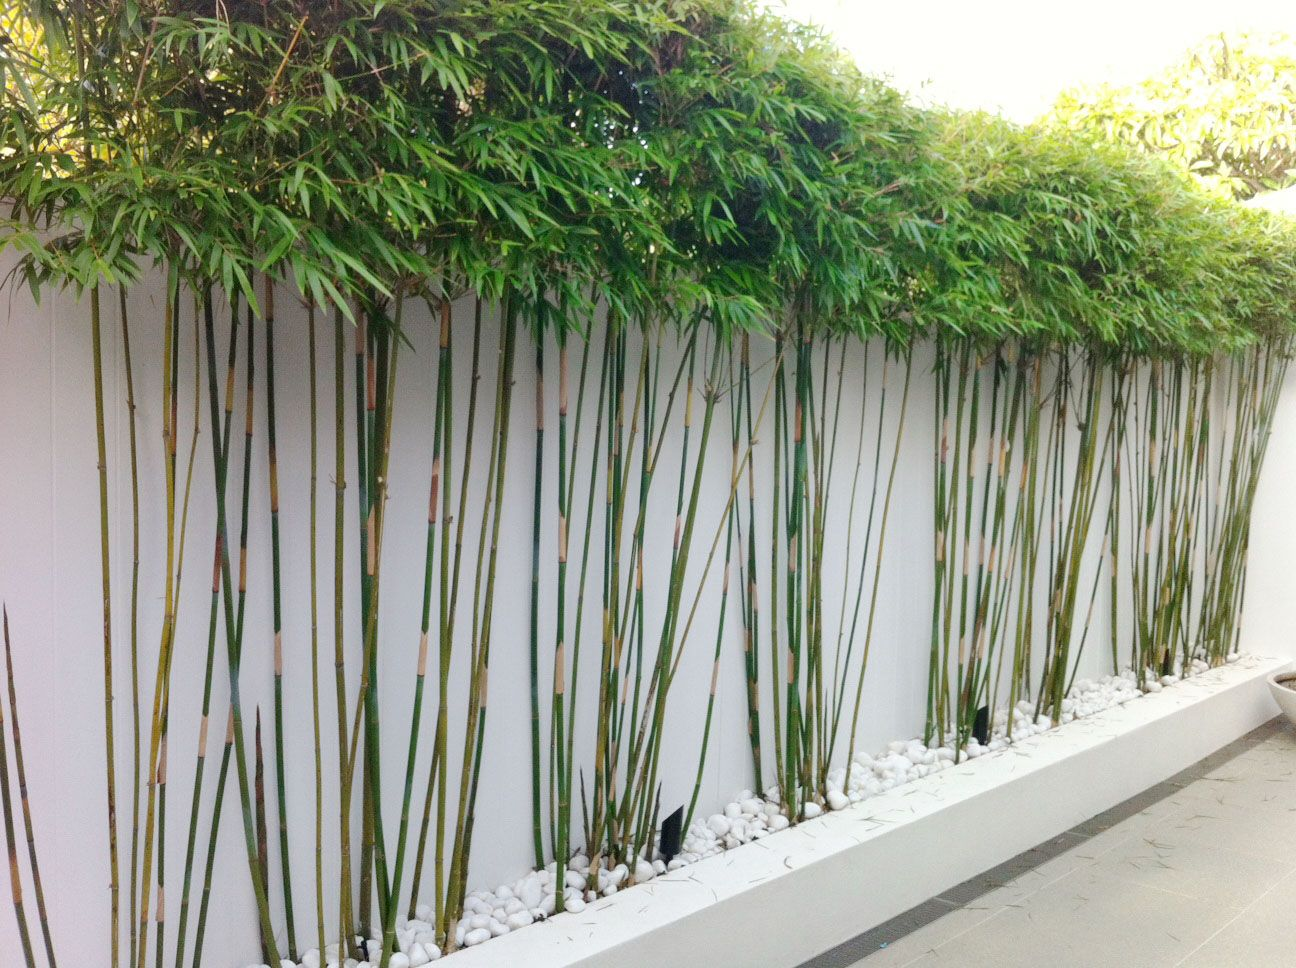 A World Of Minimalist White Es Bamboo Planting For Privacy